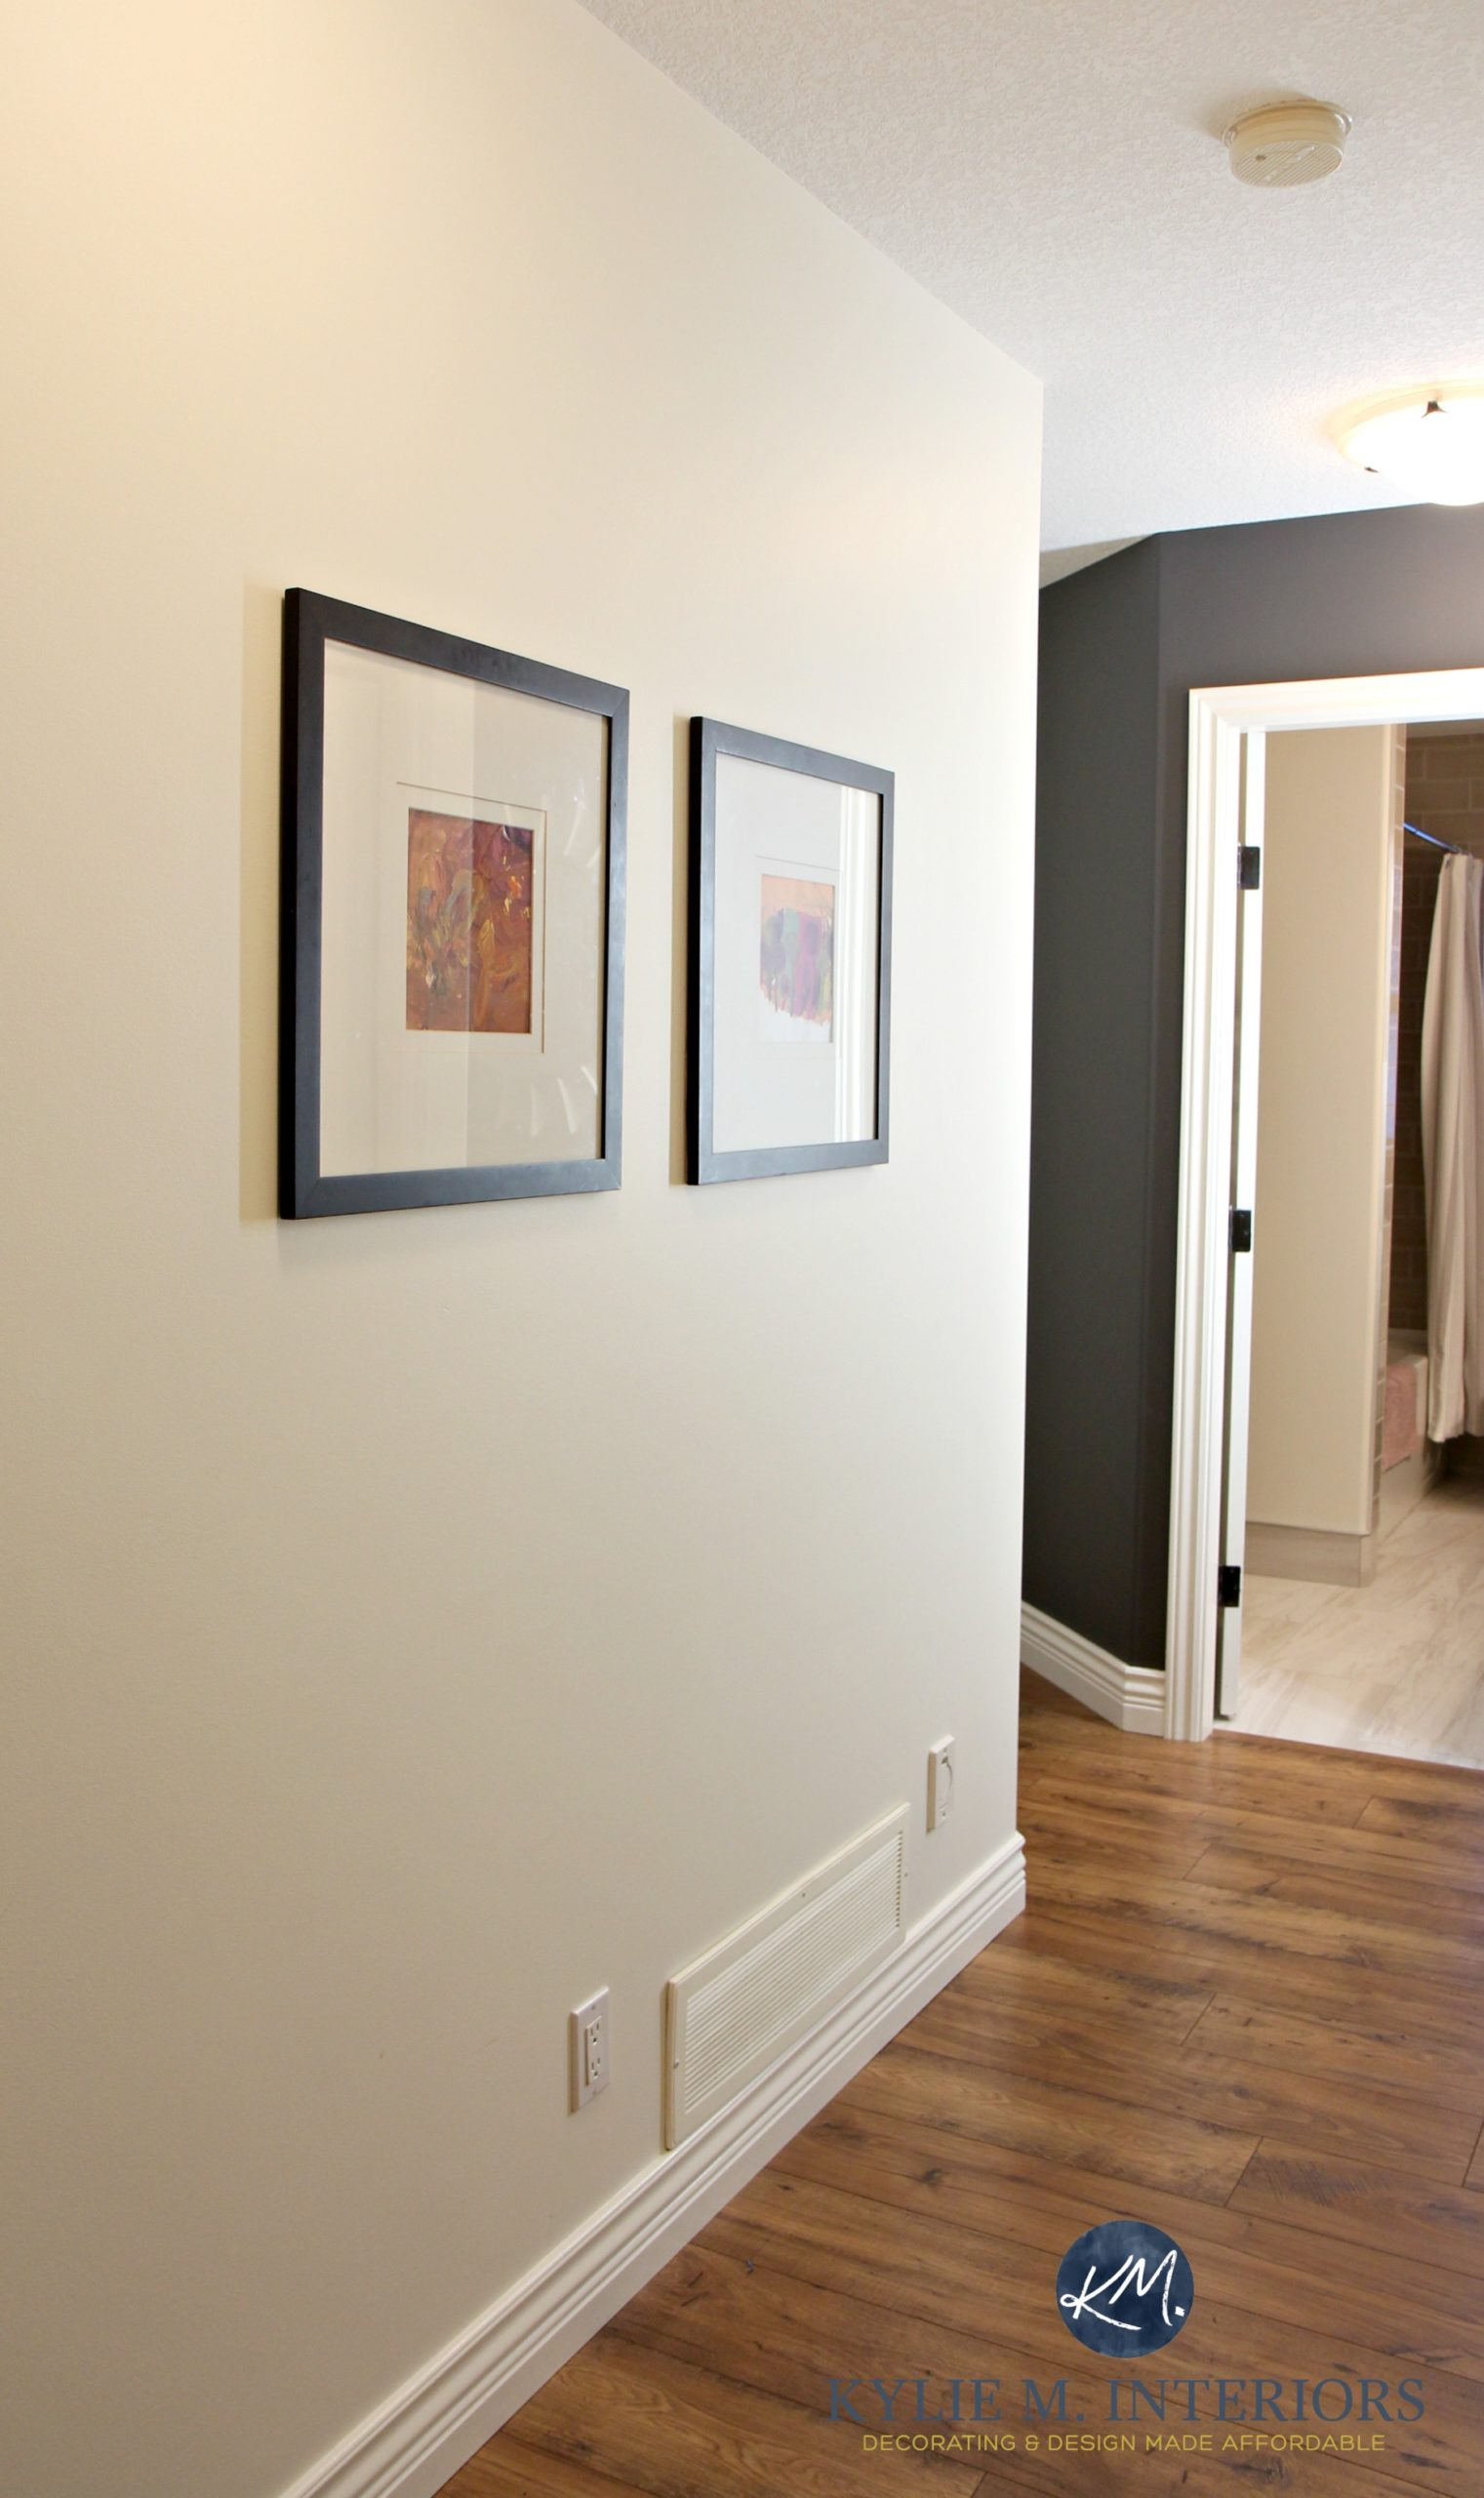 Williams Creamy In A Dark Hallway With Benjamin Moore Gray Feature Wall Or Accent Kylie M Interiors Laminate Wood Flooring And Cloud White Trim